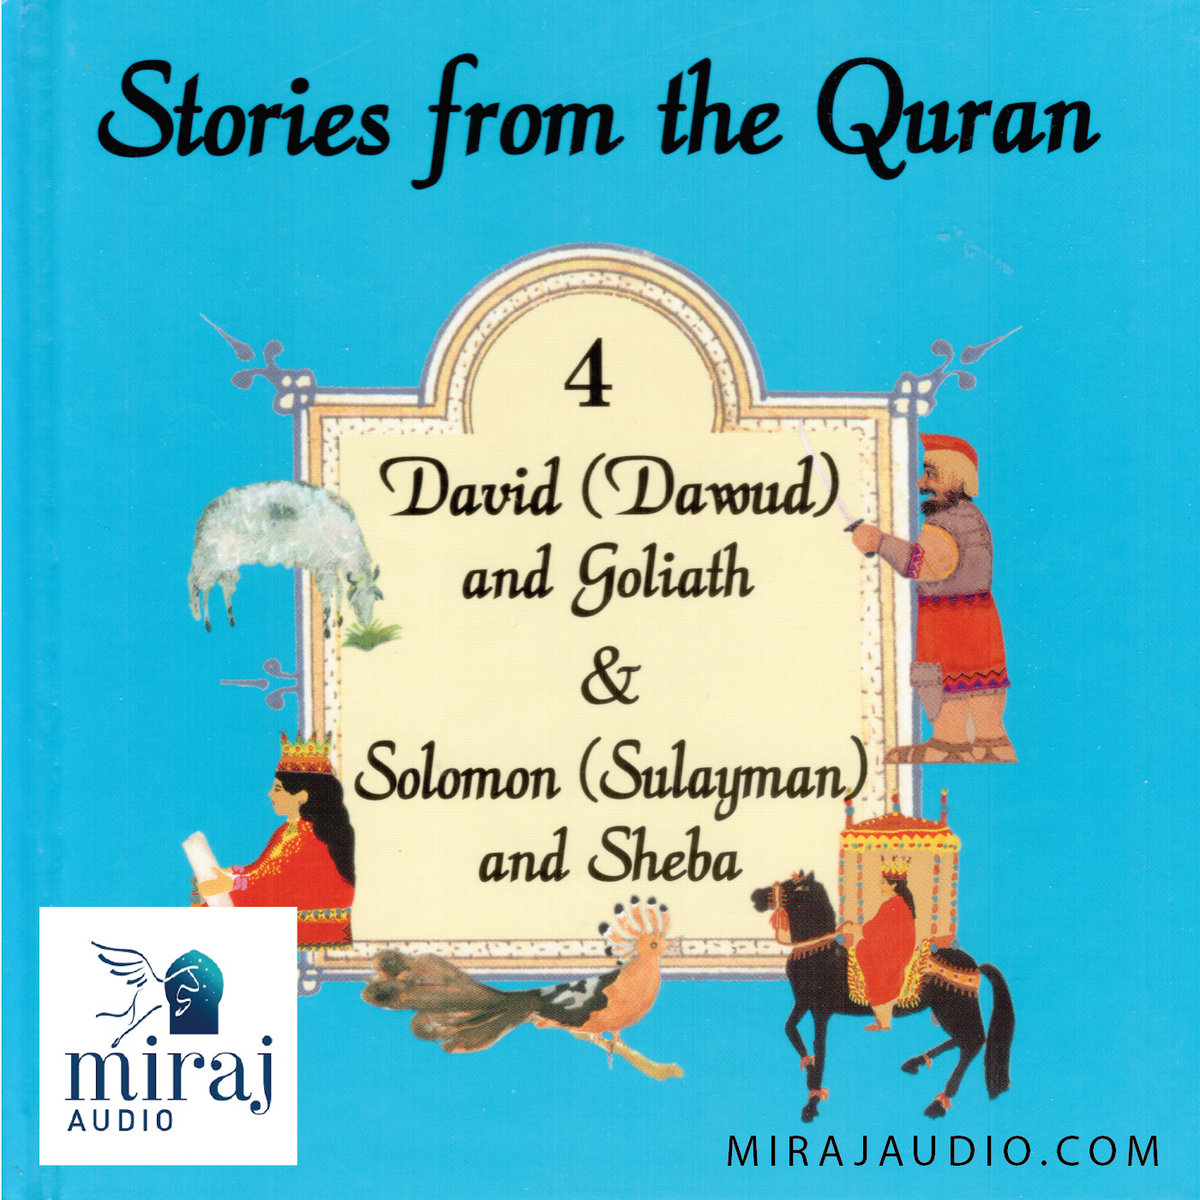 Stories from the Quran 4 (3+) | Miraj Audio